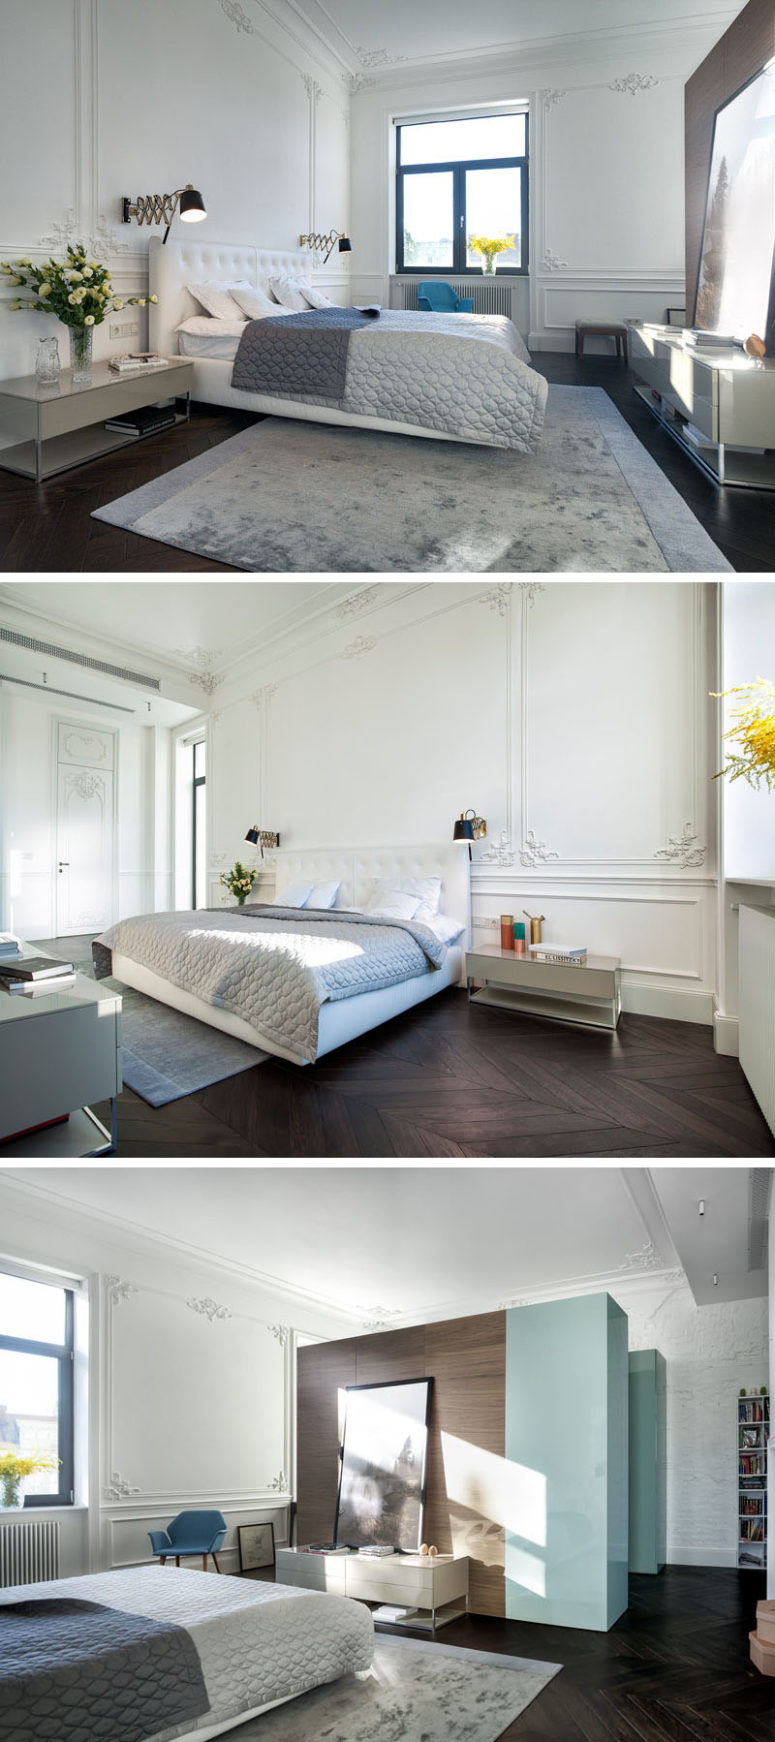 The bedroom decor is simple, neutral and cool, only the walls remind that it's a 19th century building